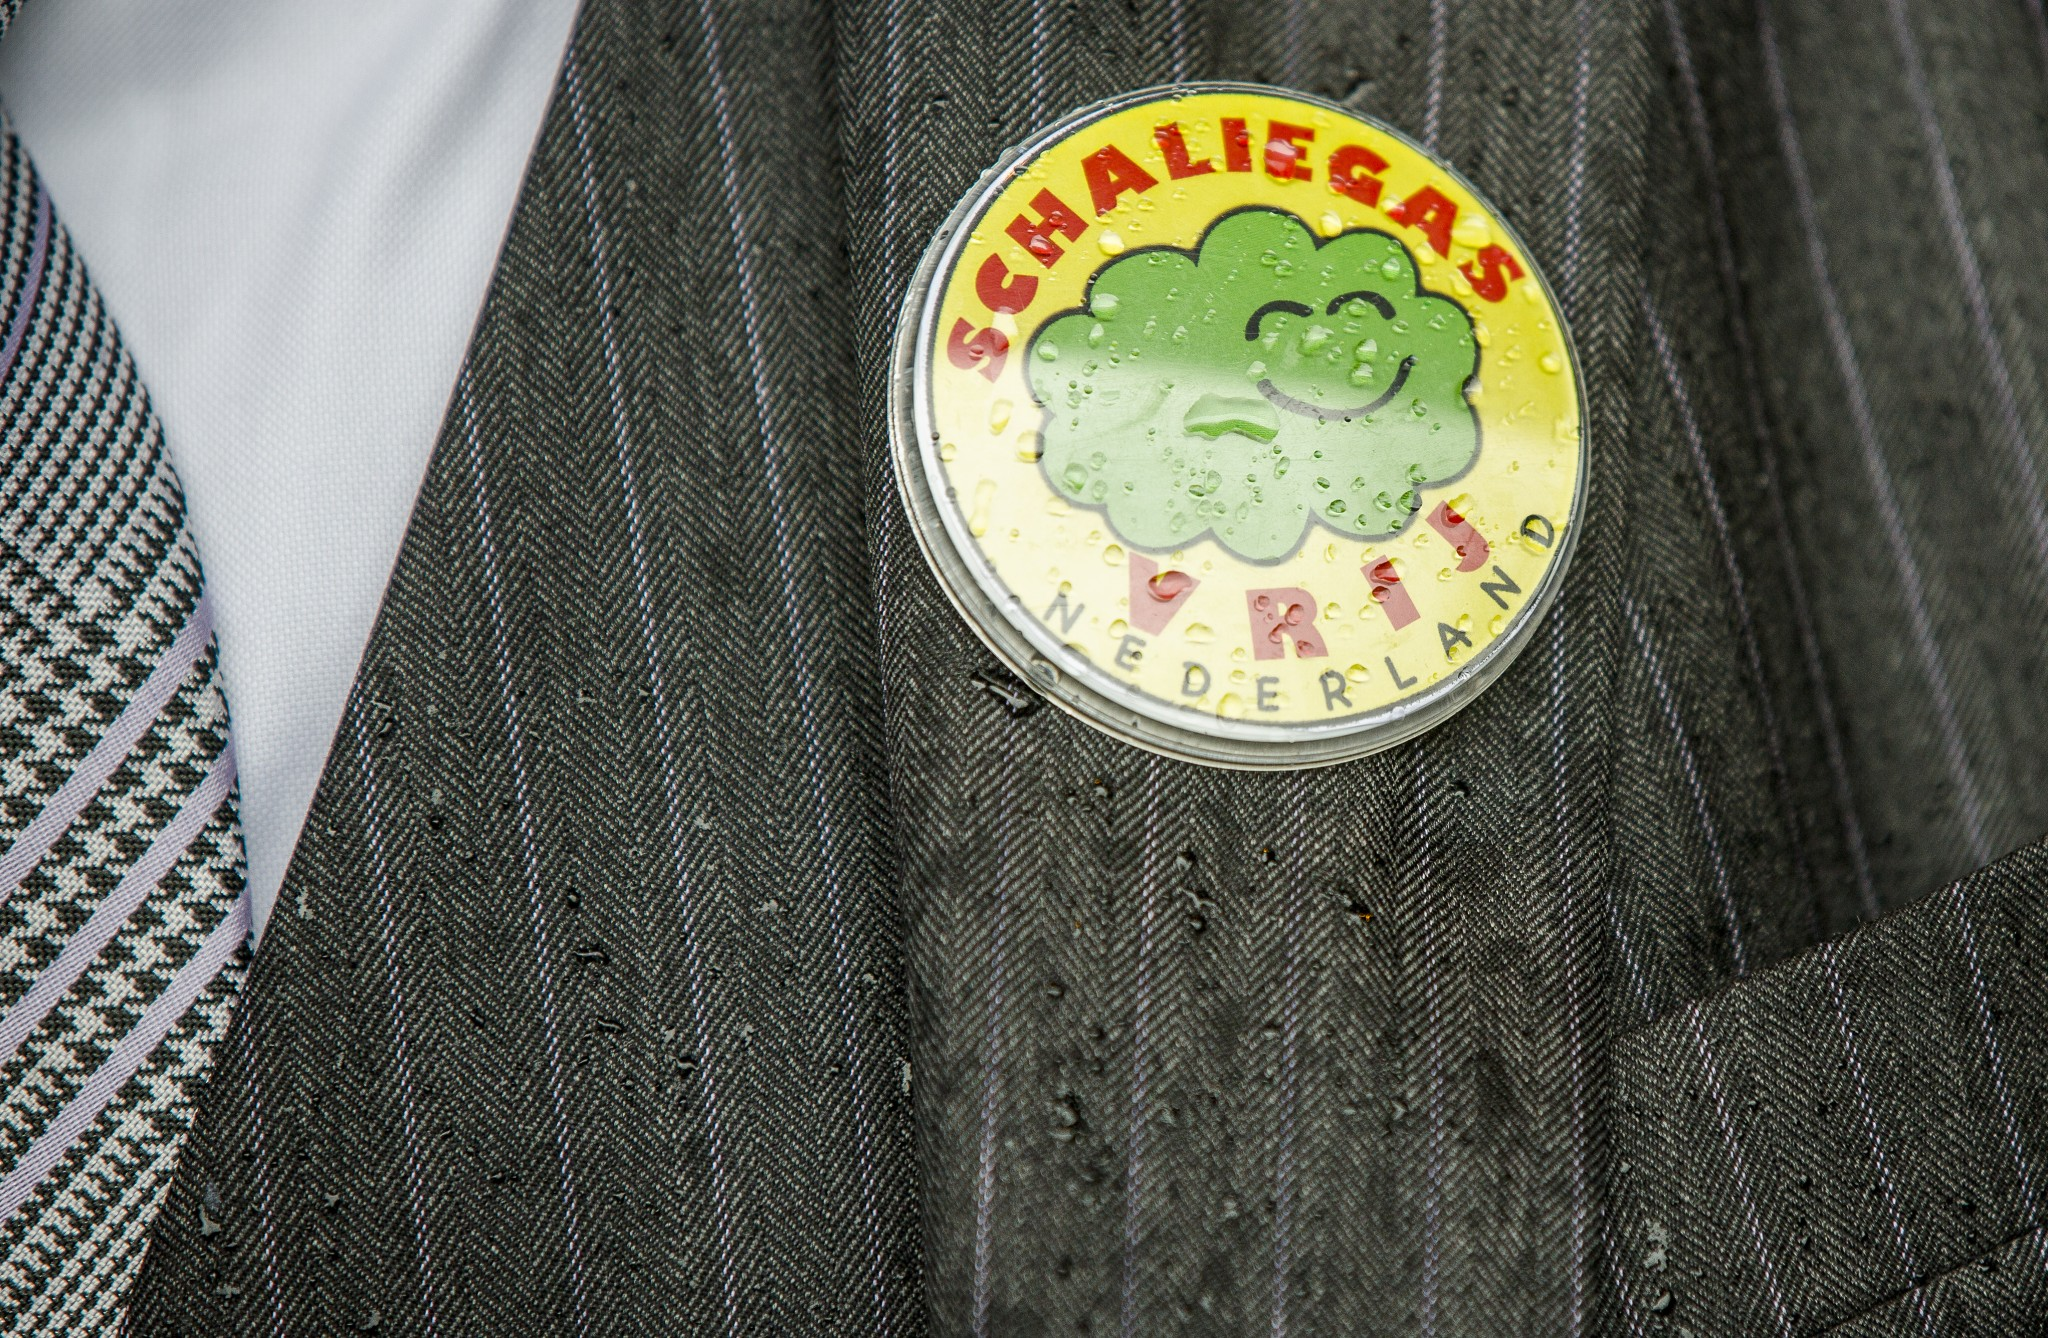 Schalie Gas Vrej Nederland button